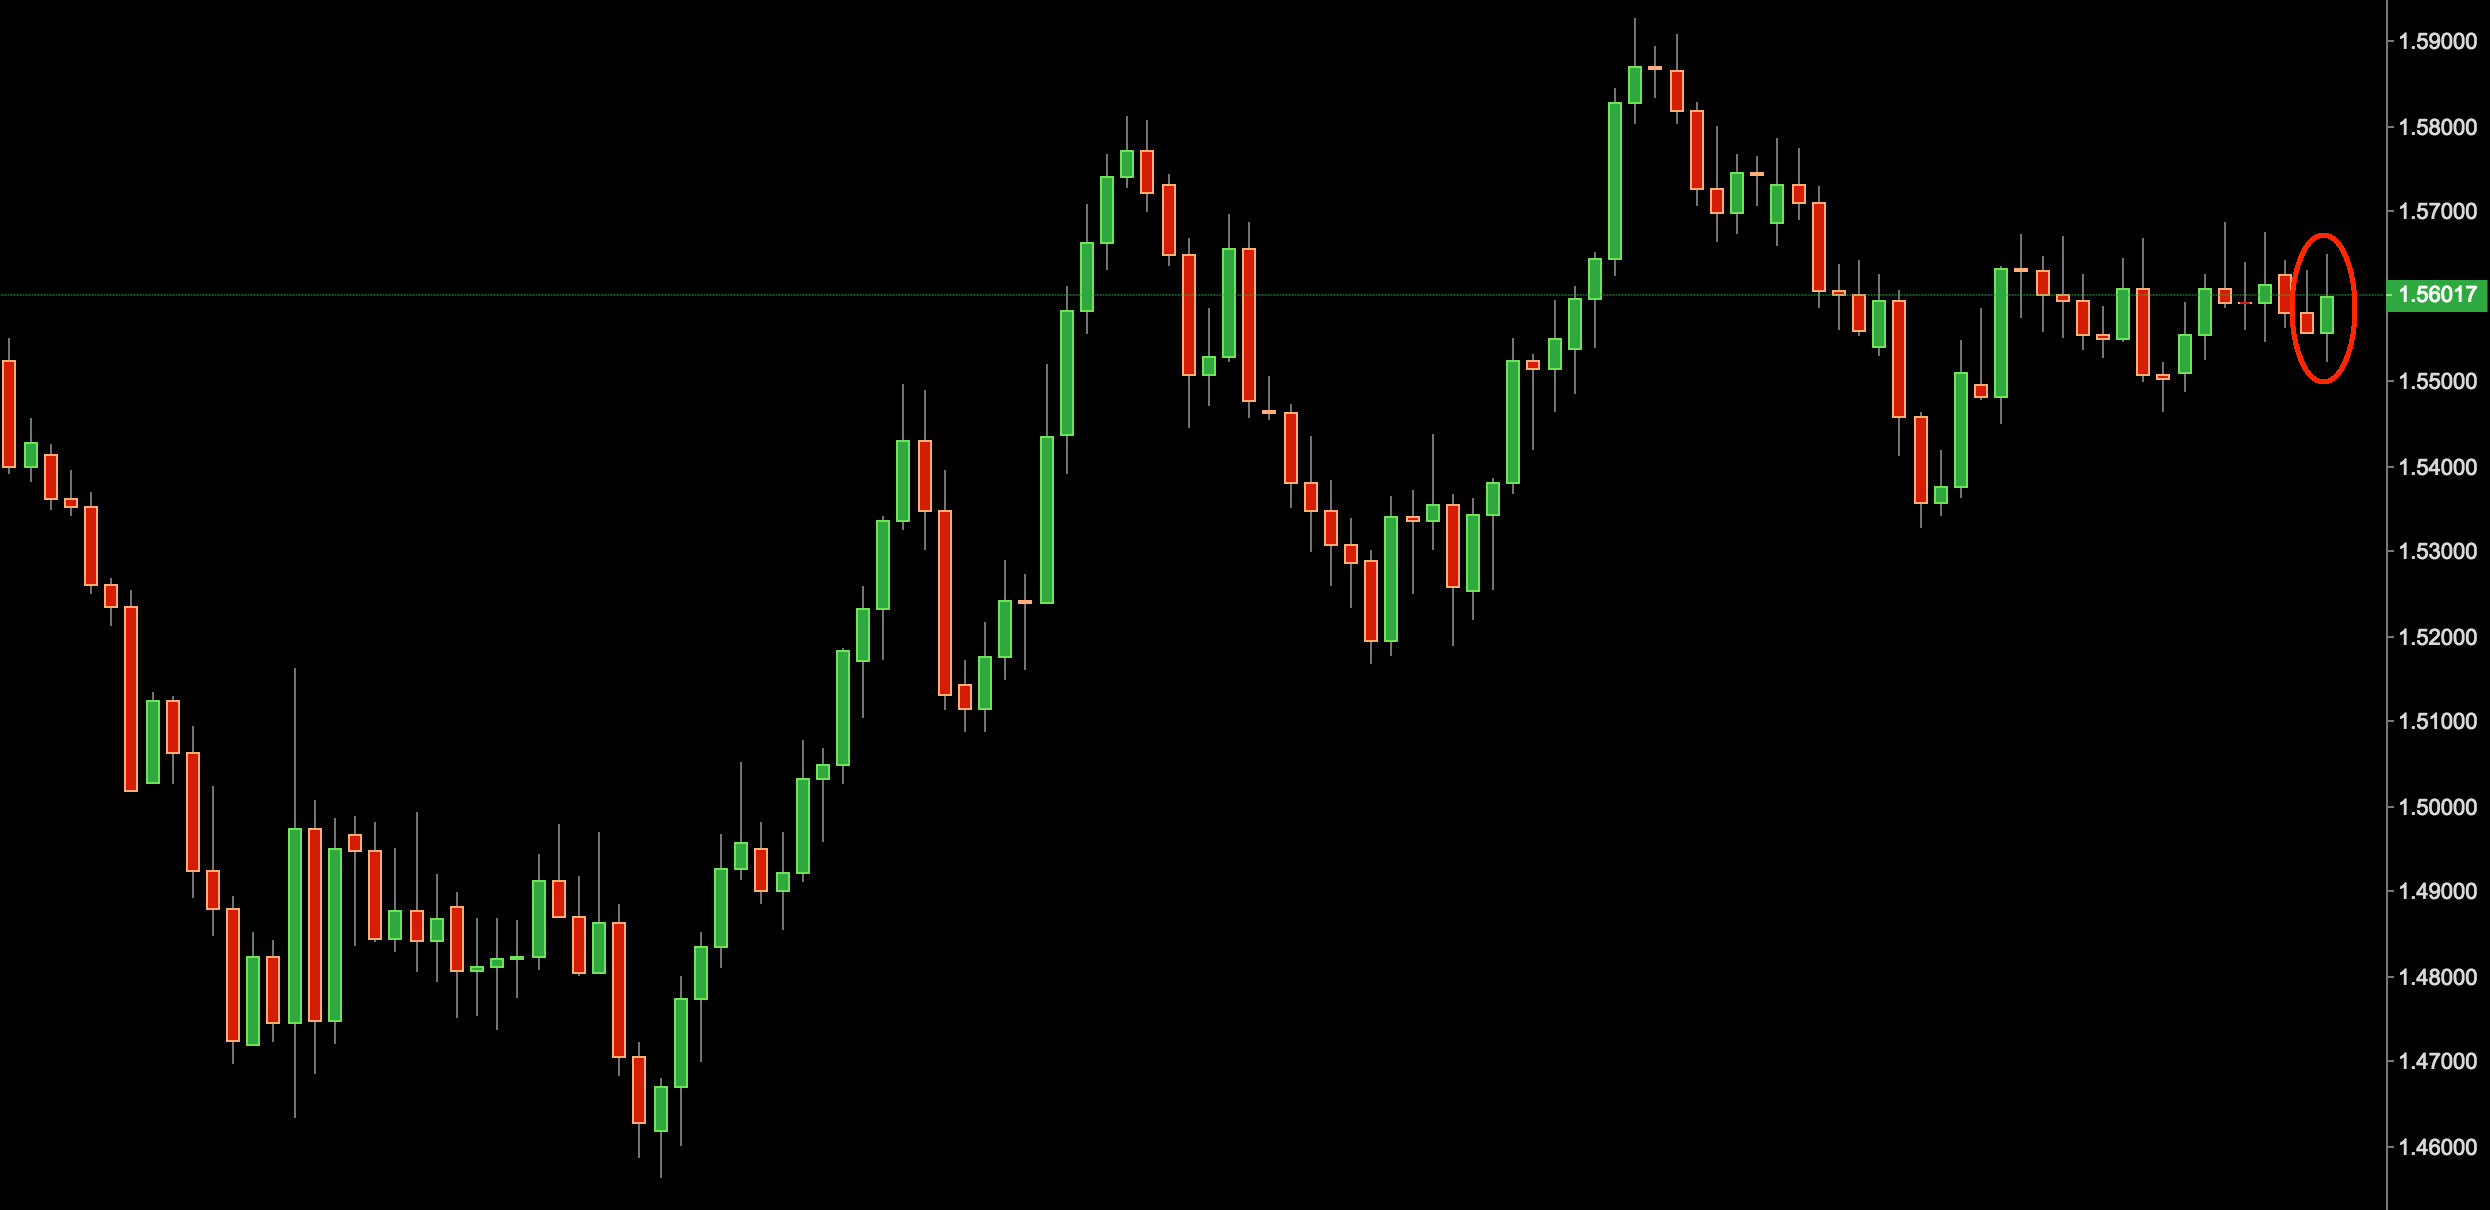 gbp/usd price action signal